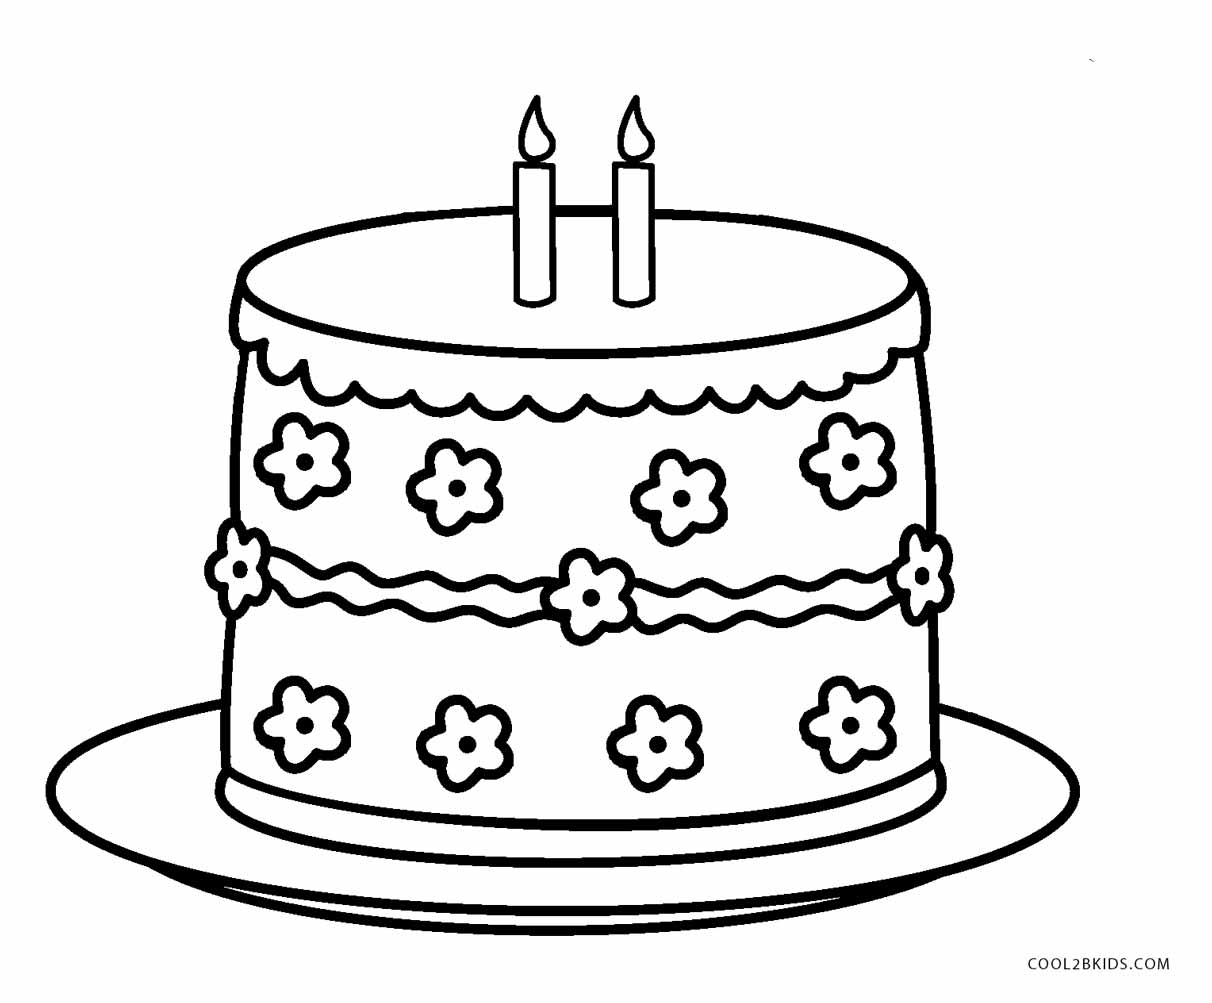 1212x1003 Free Printable Birthday Cake Coloring Pages For Kids